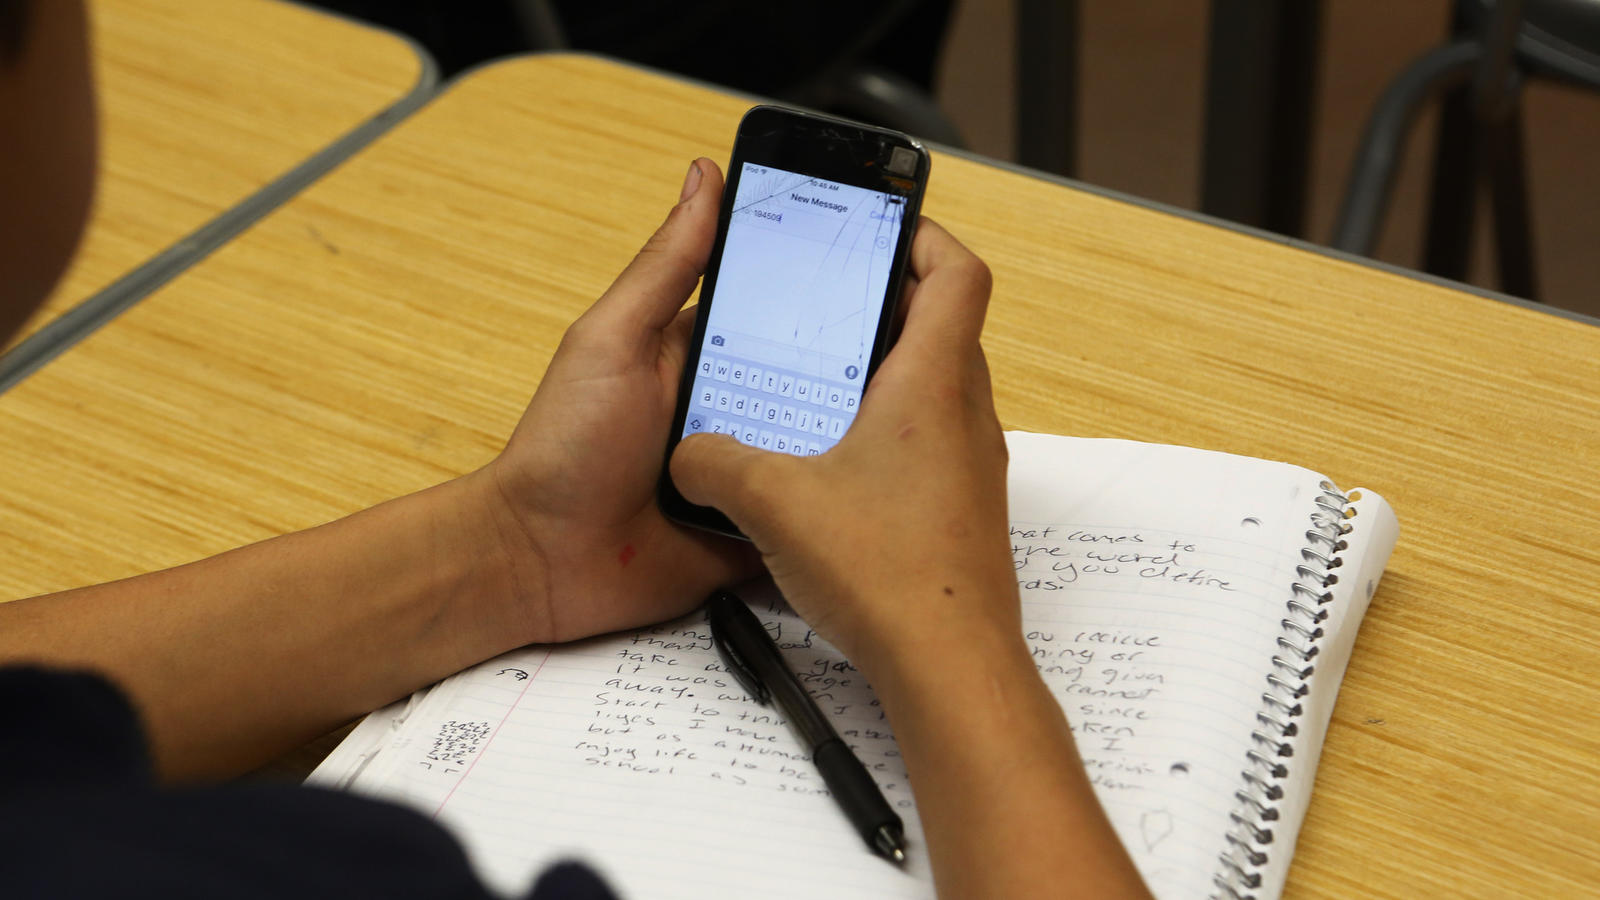 A student uses a cellphone in class to answer questions. (Anne Cusack / Los Angeles Times)